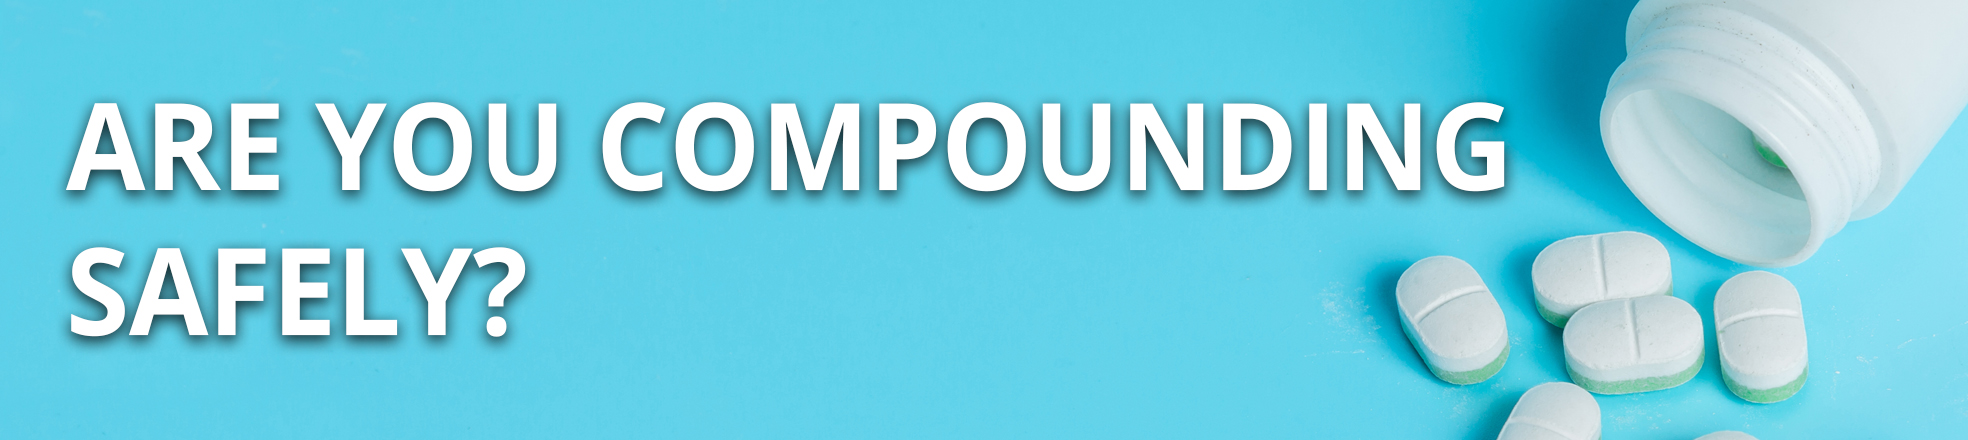 Are you compounding safely?